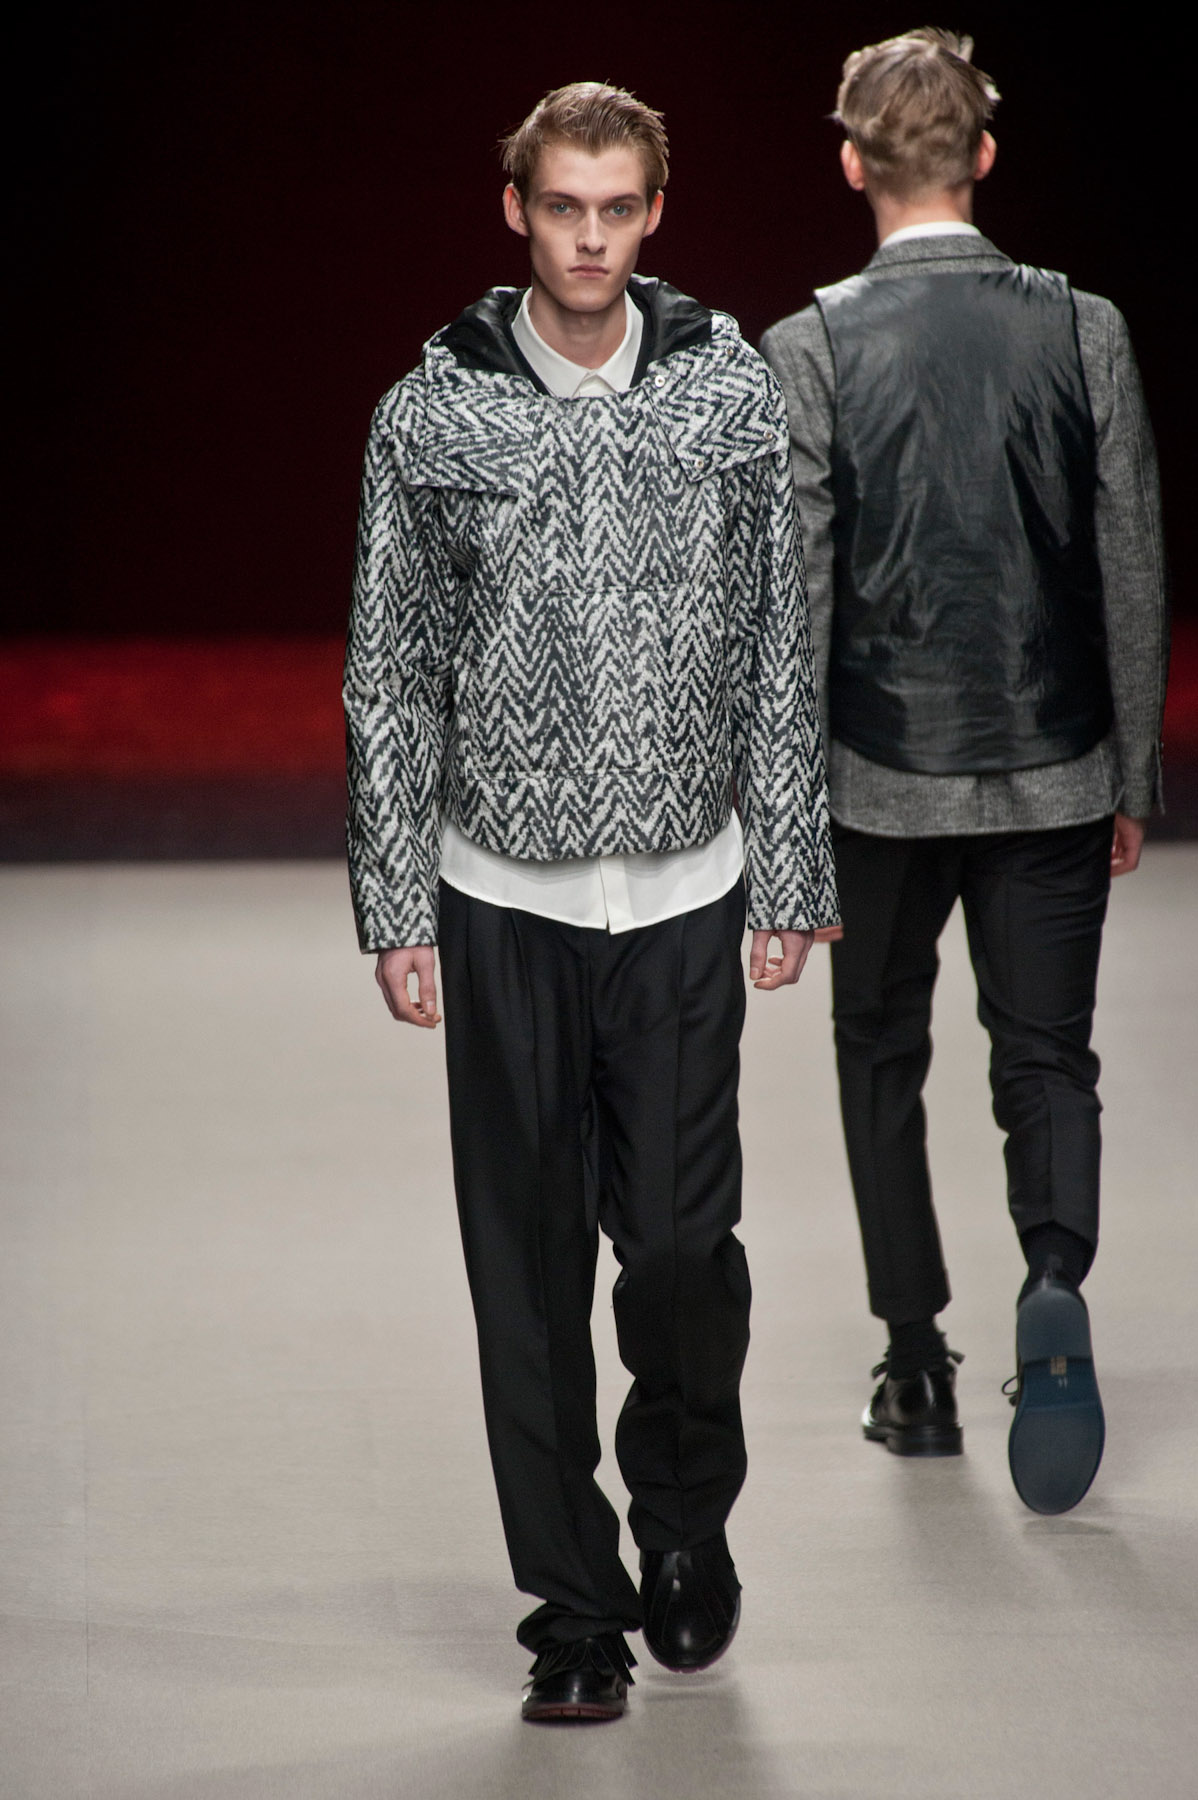 vanassche-MEN-paris-inv2014-5